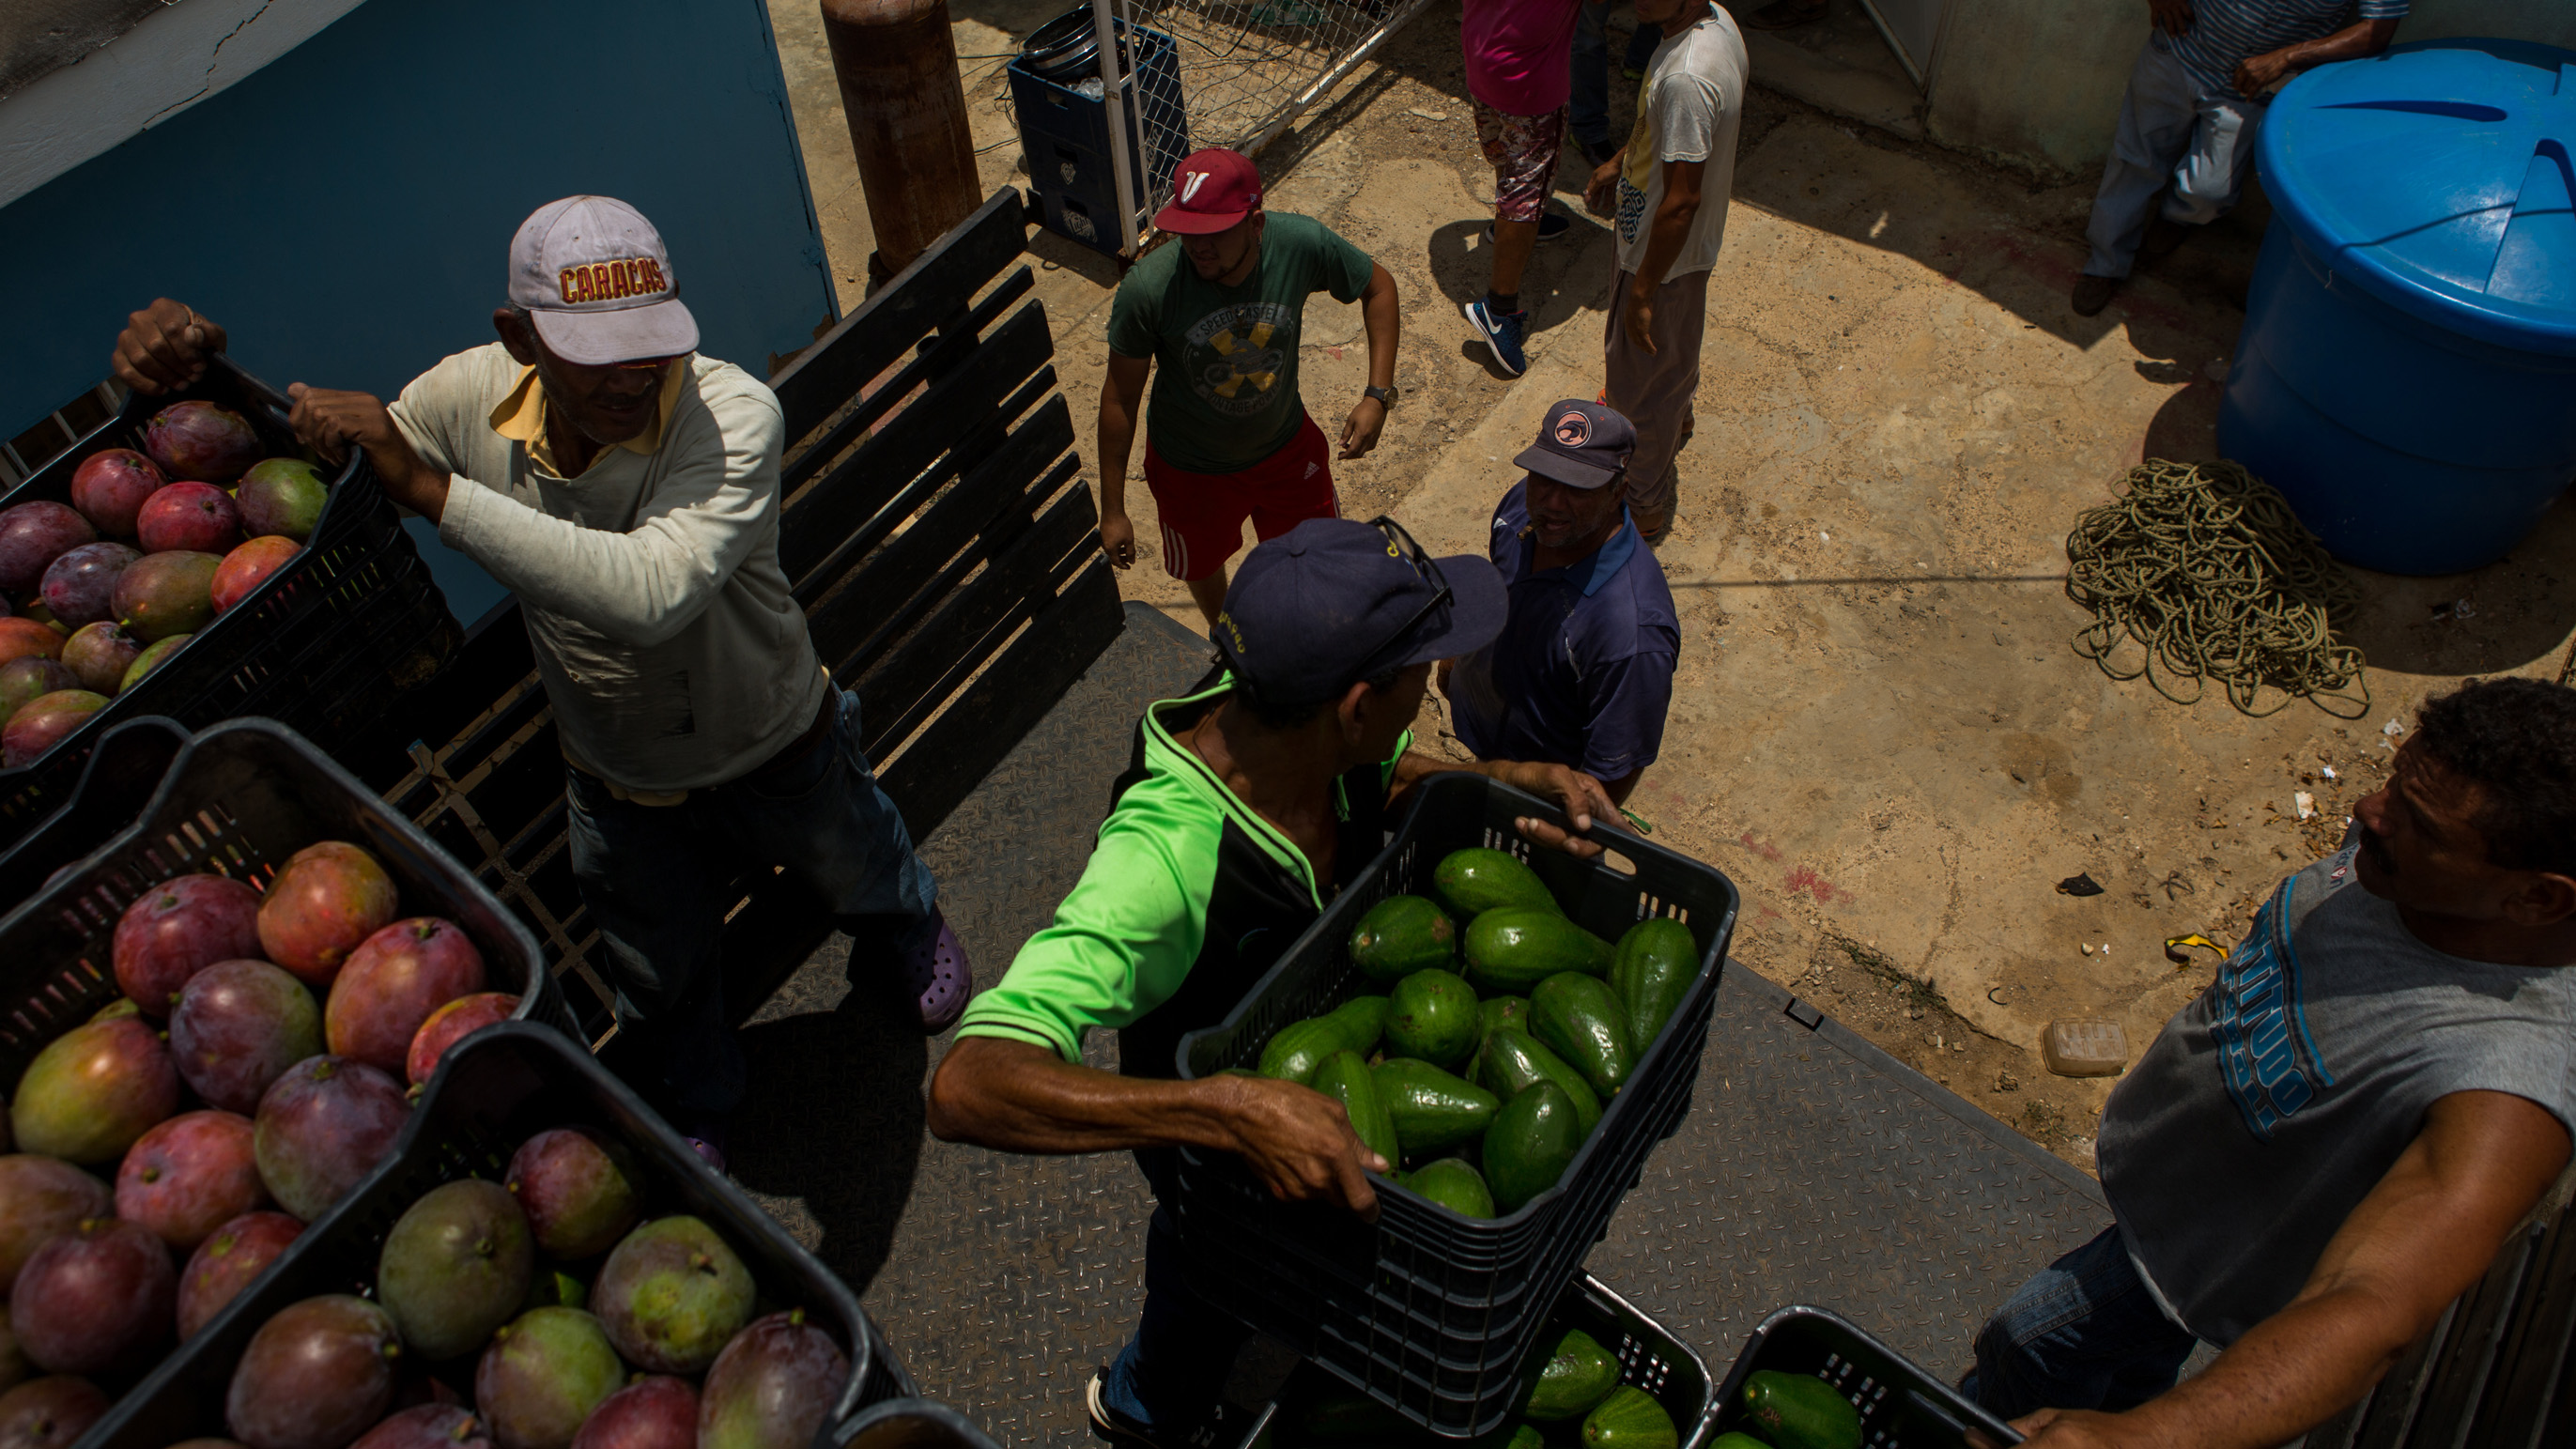 Workers unload produce for sale at a market in Caracas. It's increasingly hazardous work to drive a food delivery truck in Venezuela.